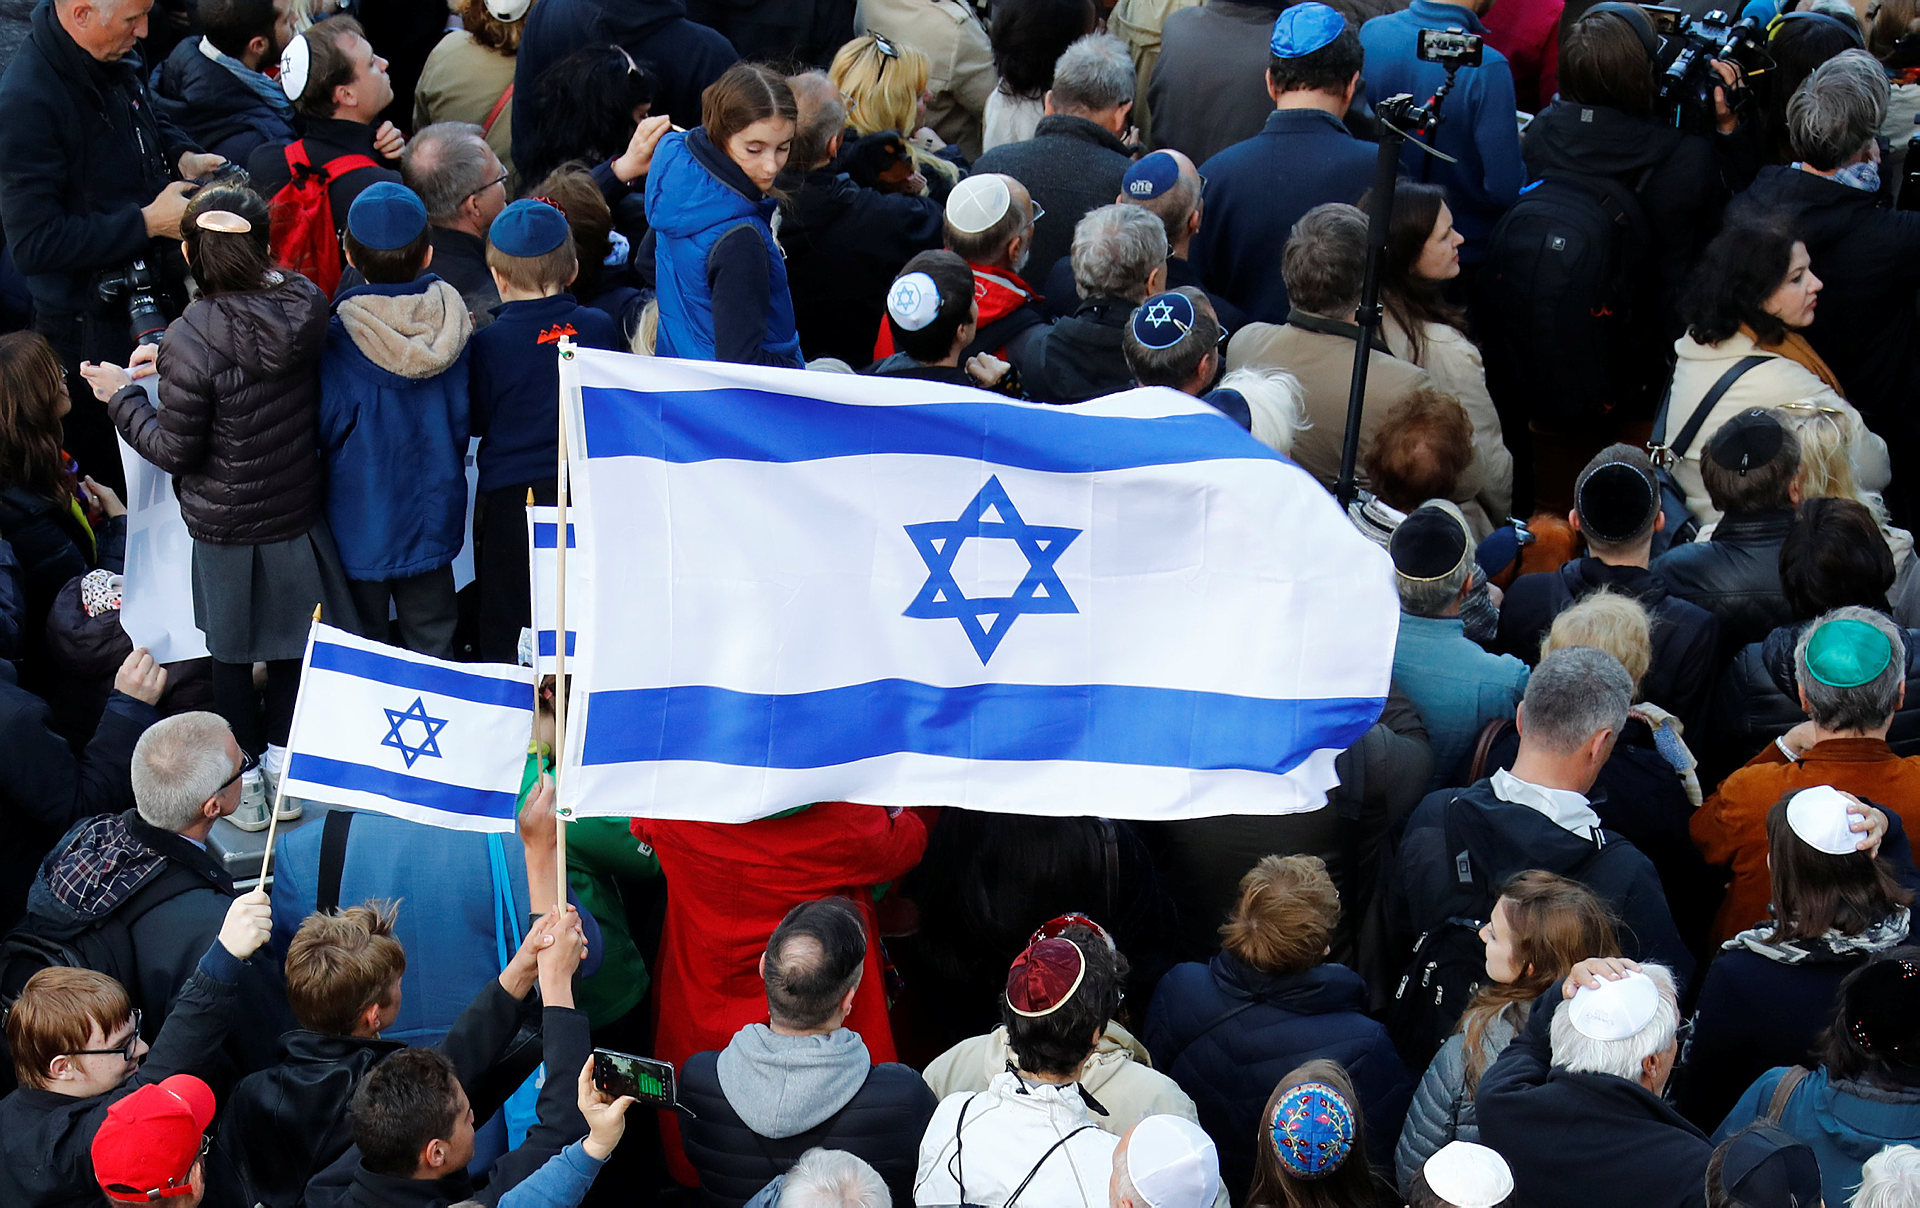 An Israeli flag is held during a demonstration in front of a Jewish synagogue in Berlin